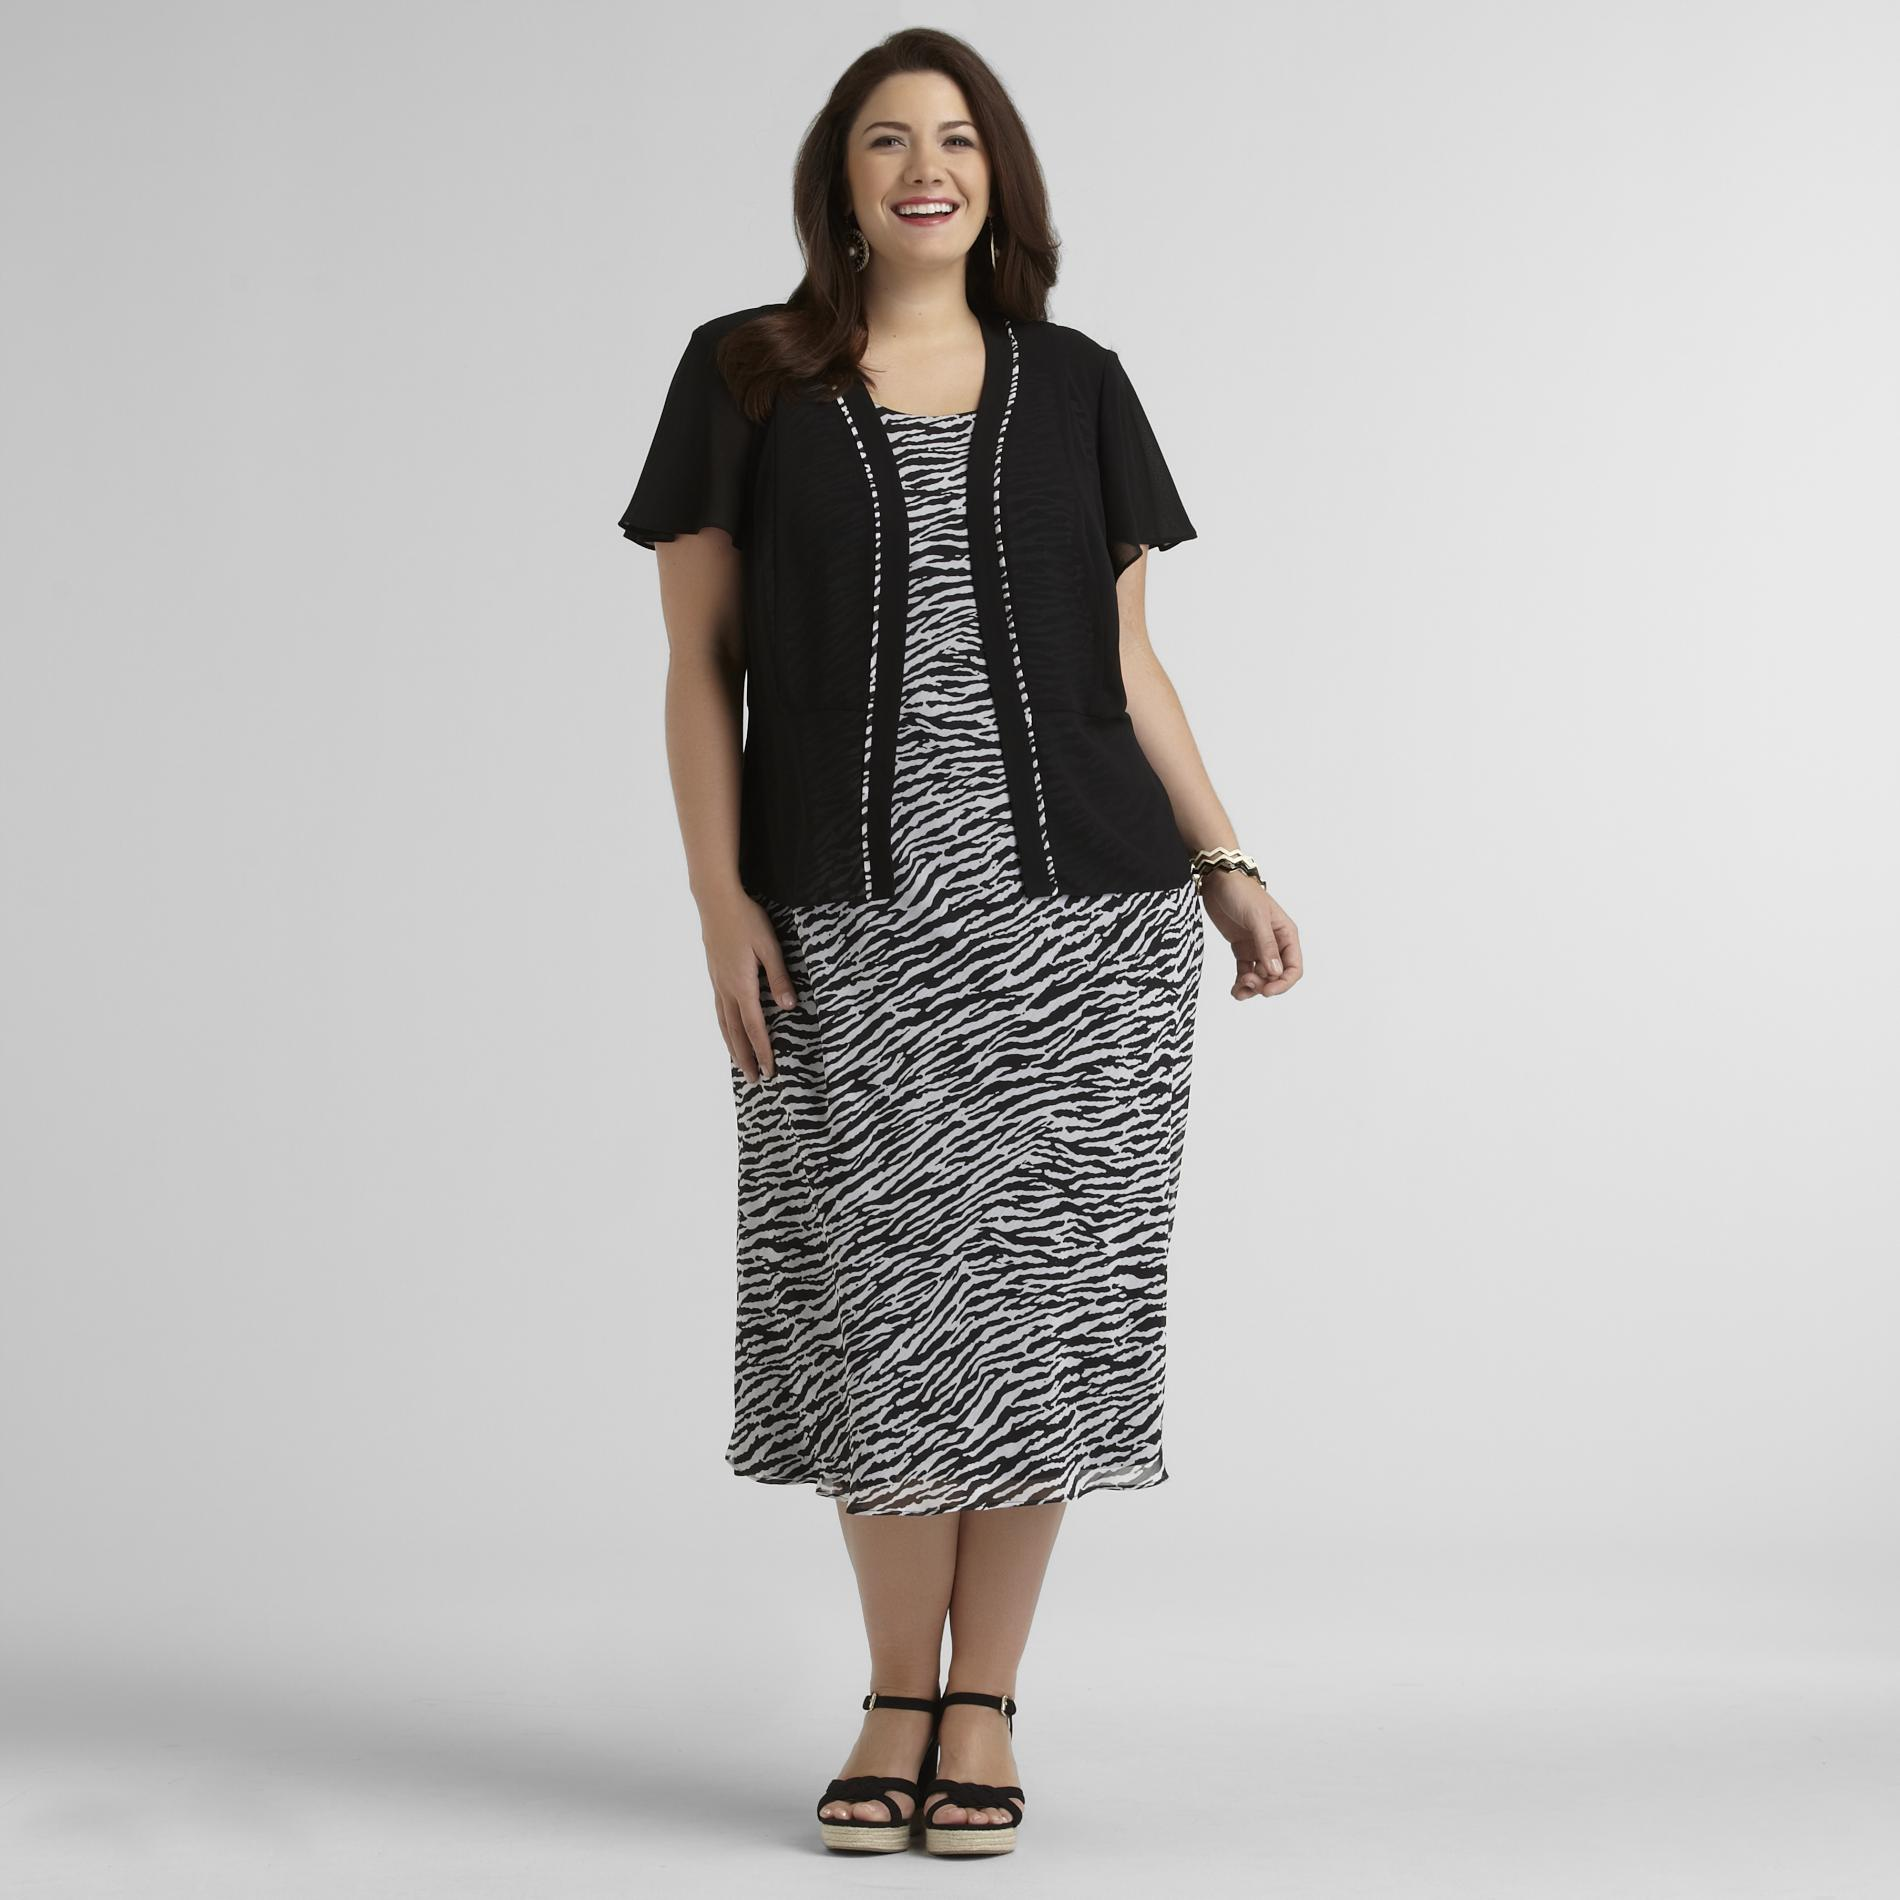 Studio 1 Women's Plus Georgette Dress & Jacket - Zebra at Sears.com